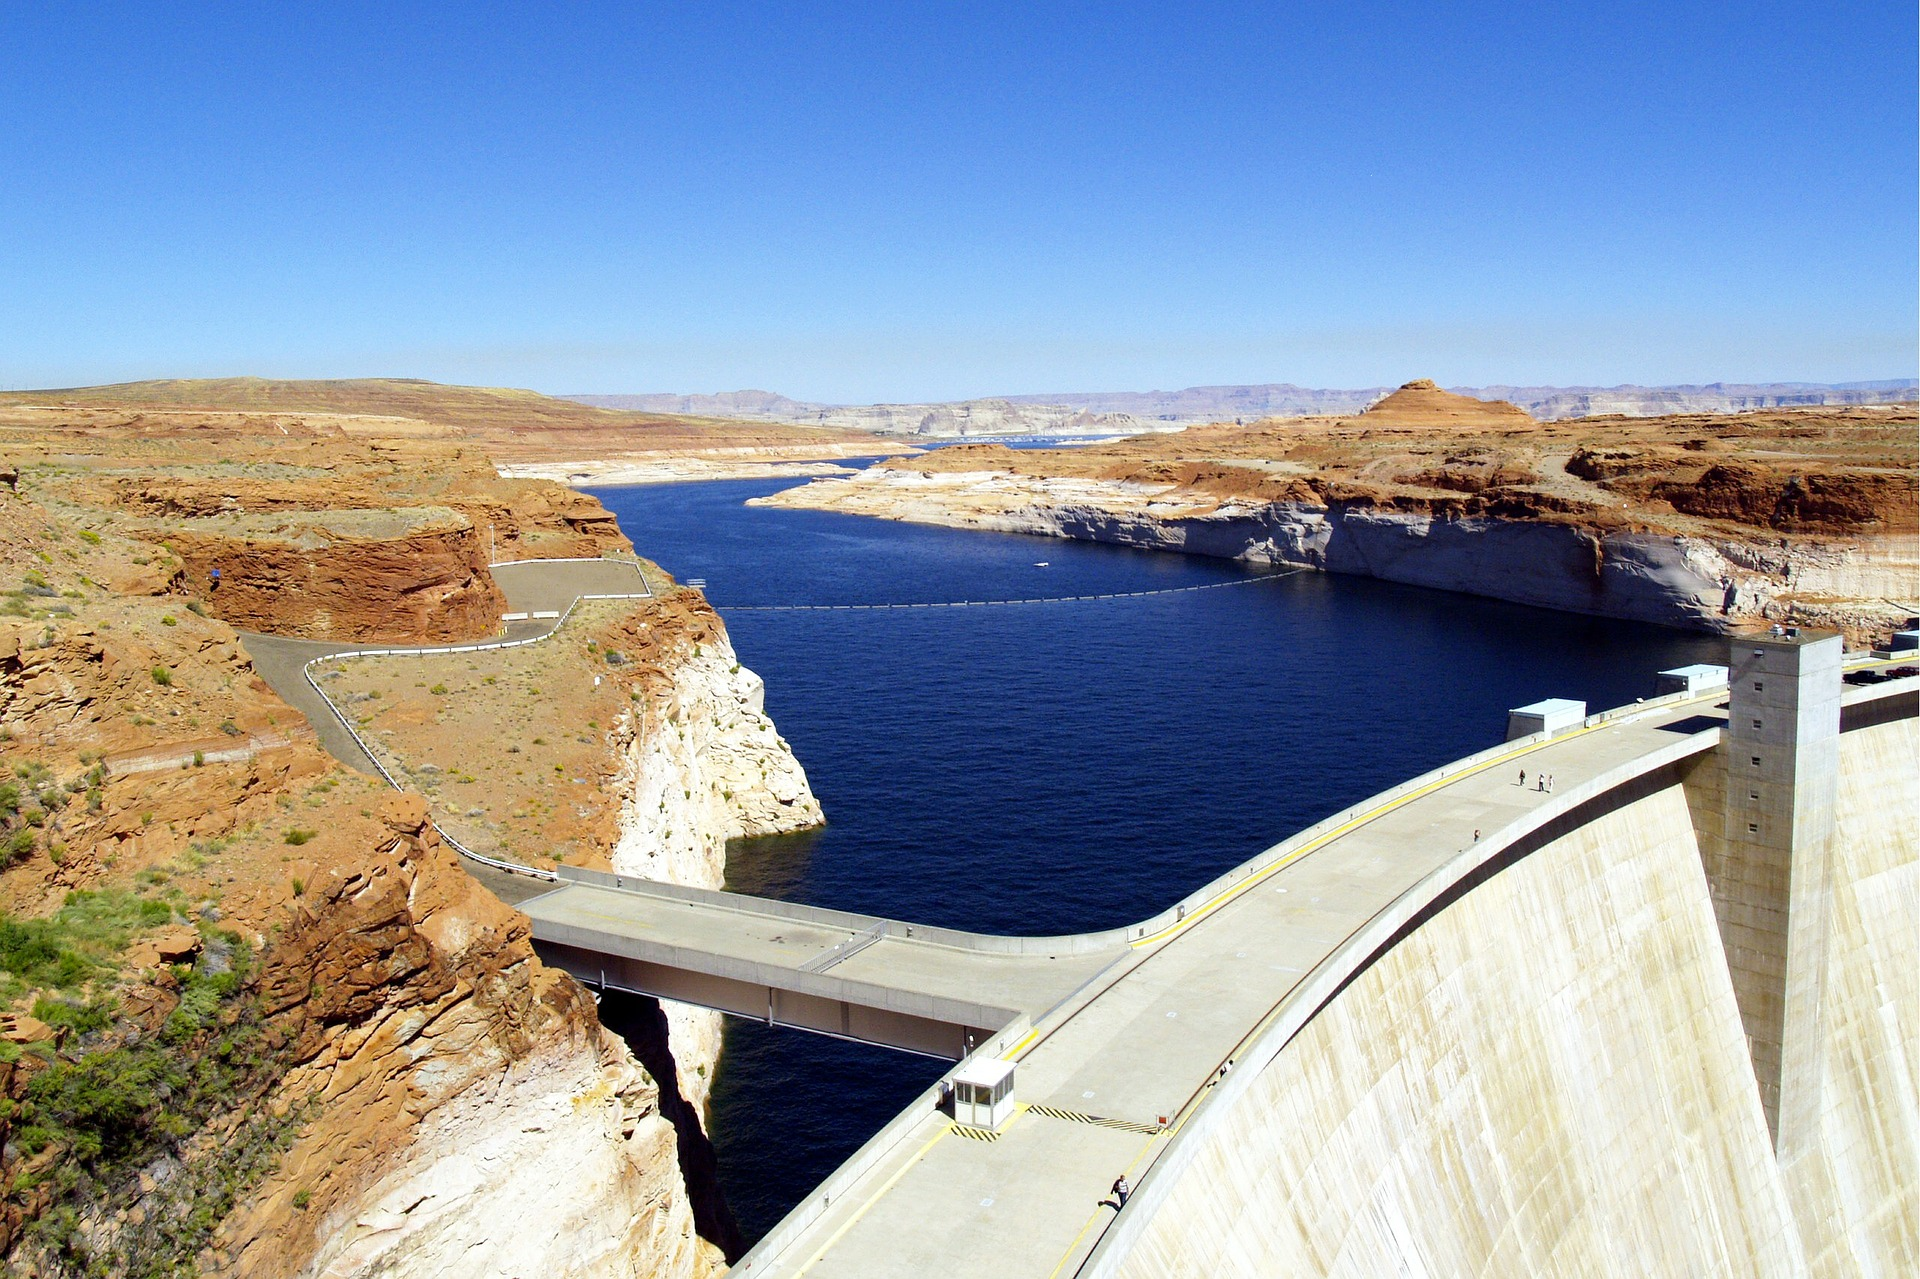 lake powell, dam, barrier support